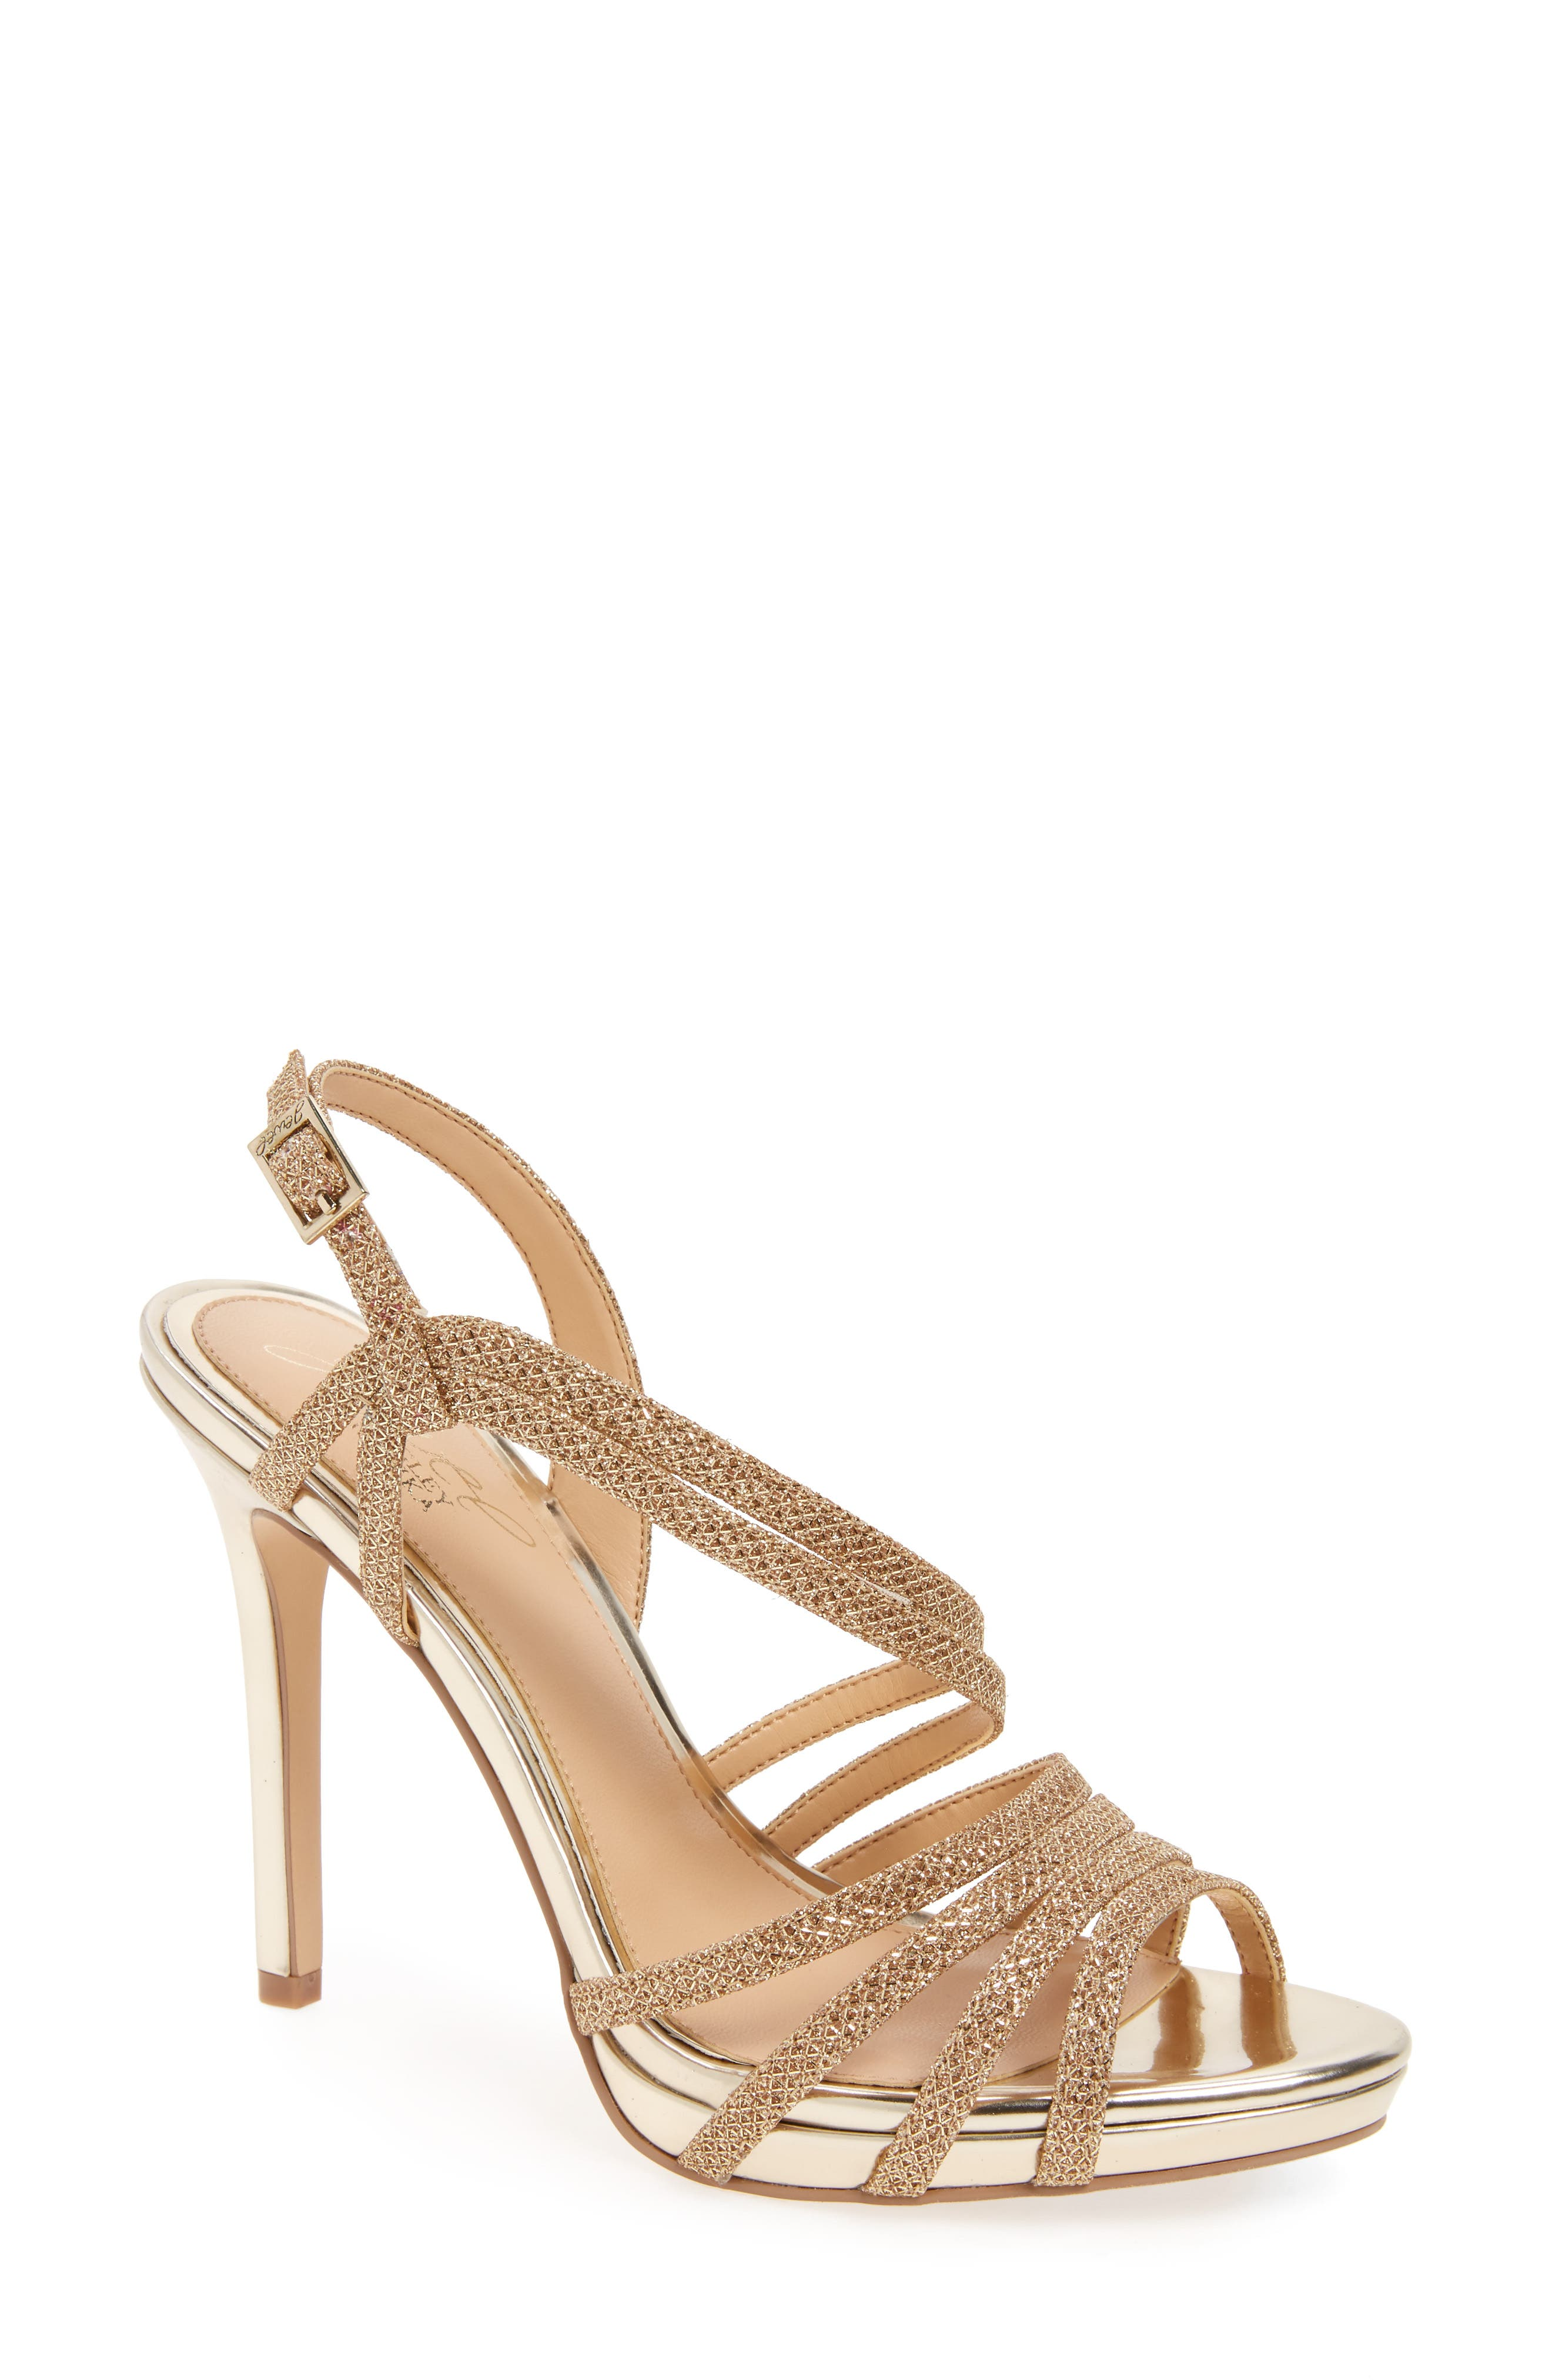 Alternate Image 1 Selected - Jewel Badgley Mischka Humble Strappy Sandal (Women)